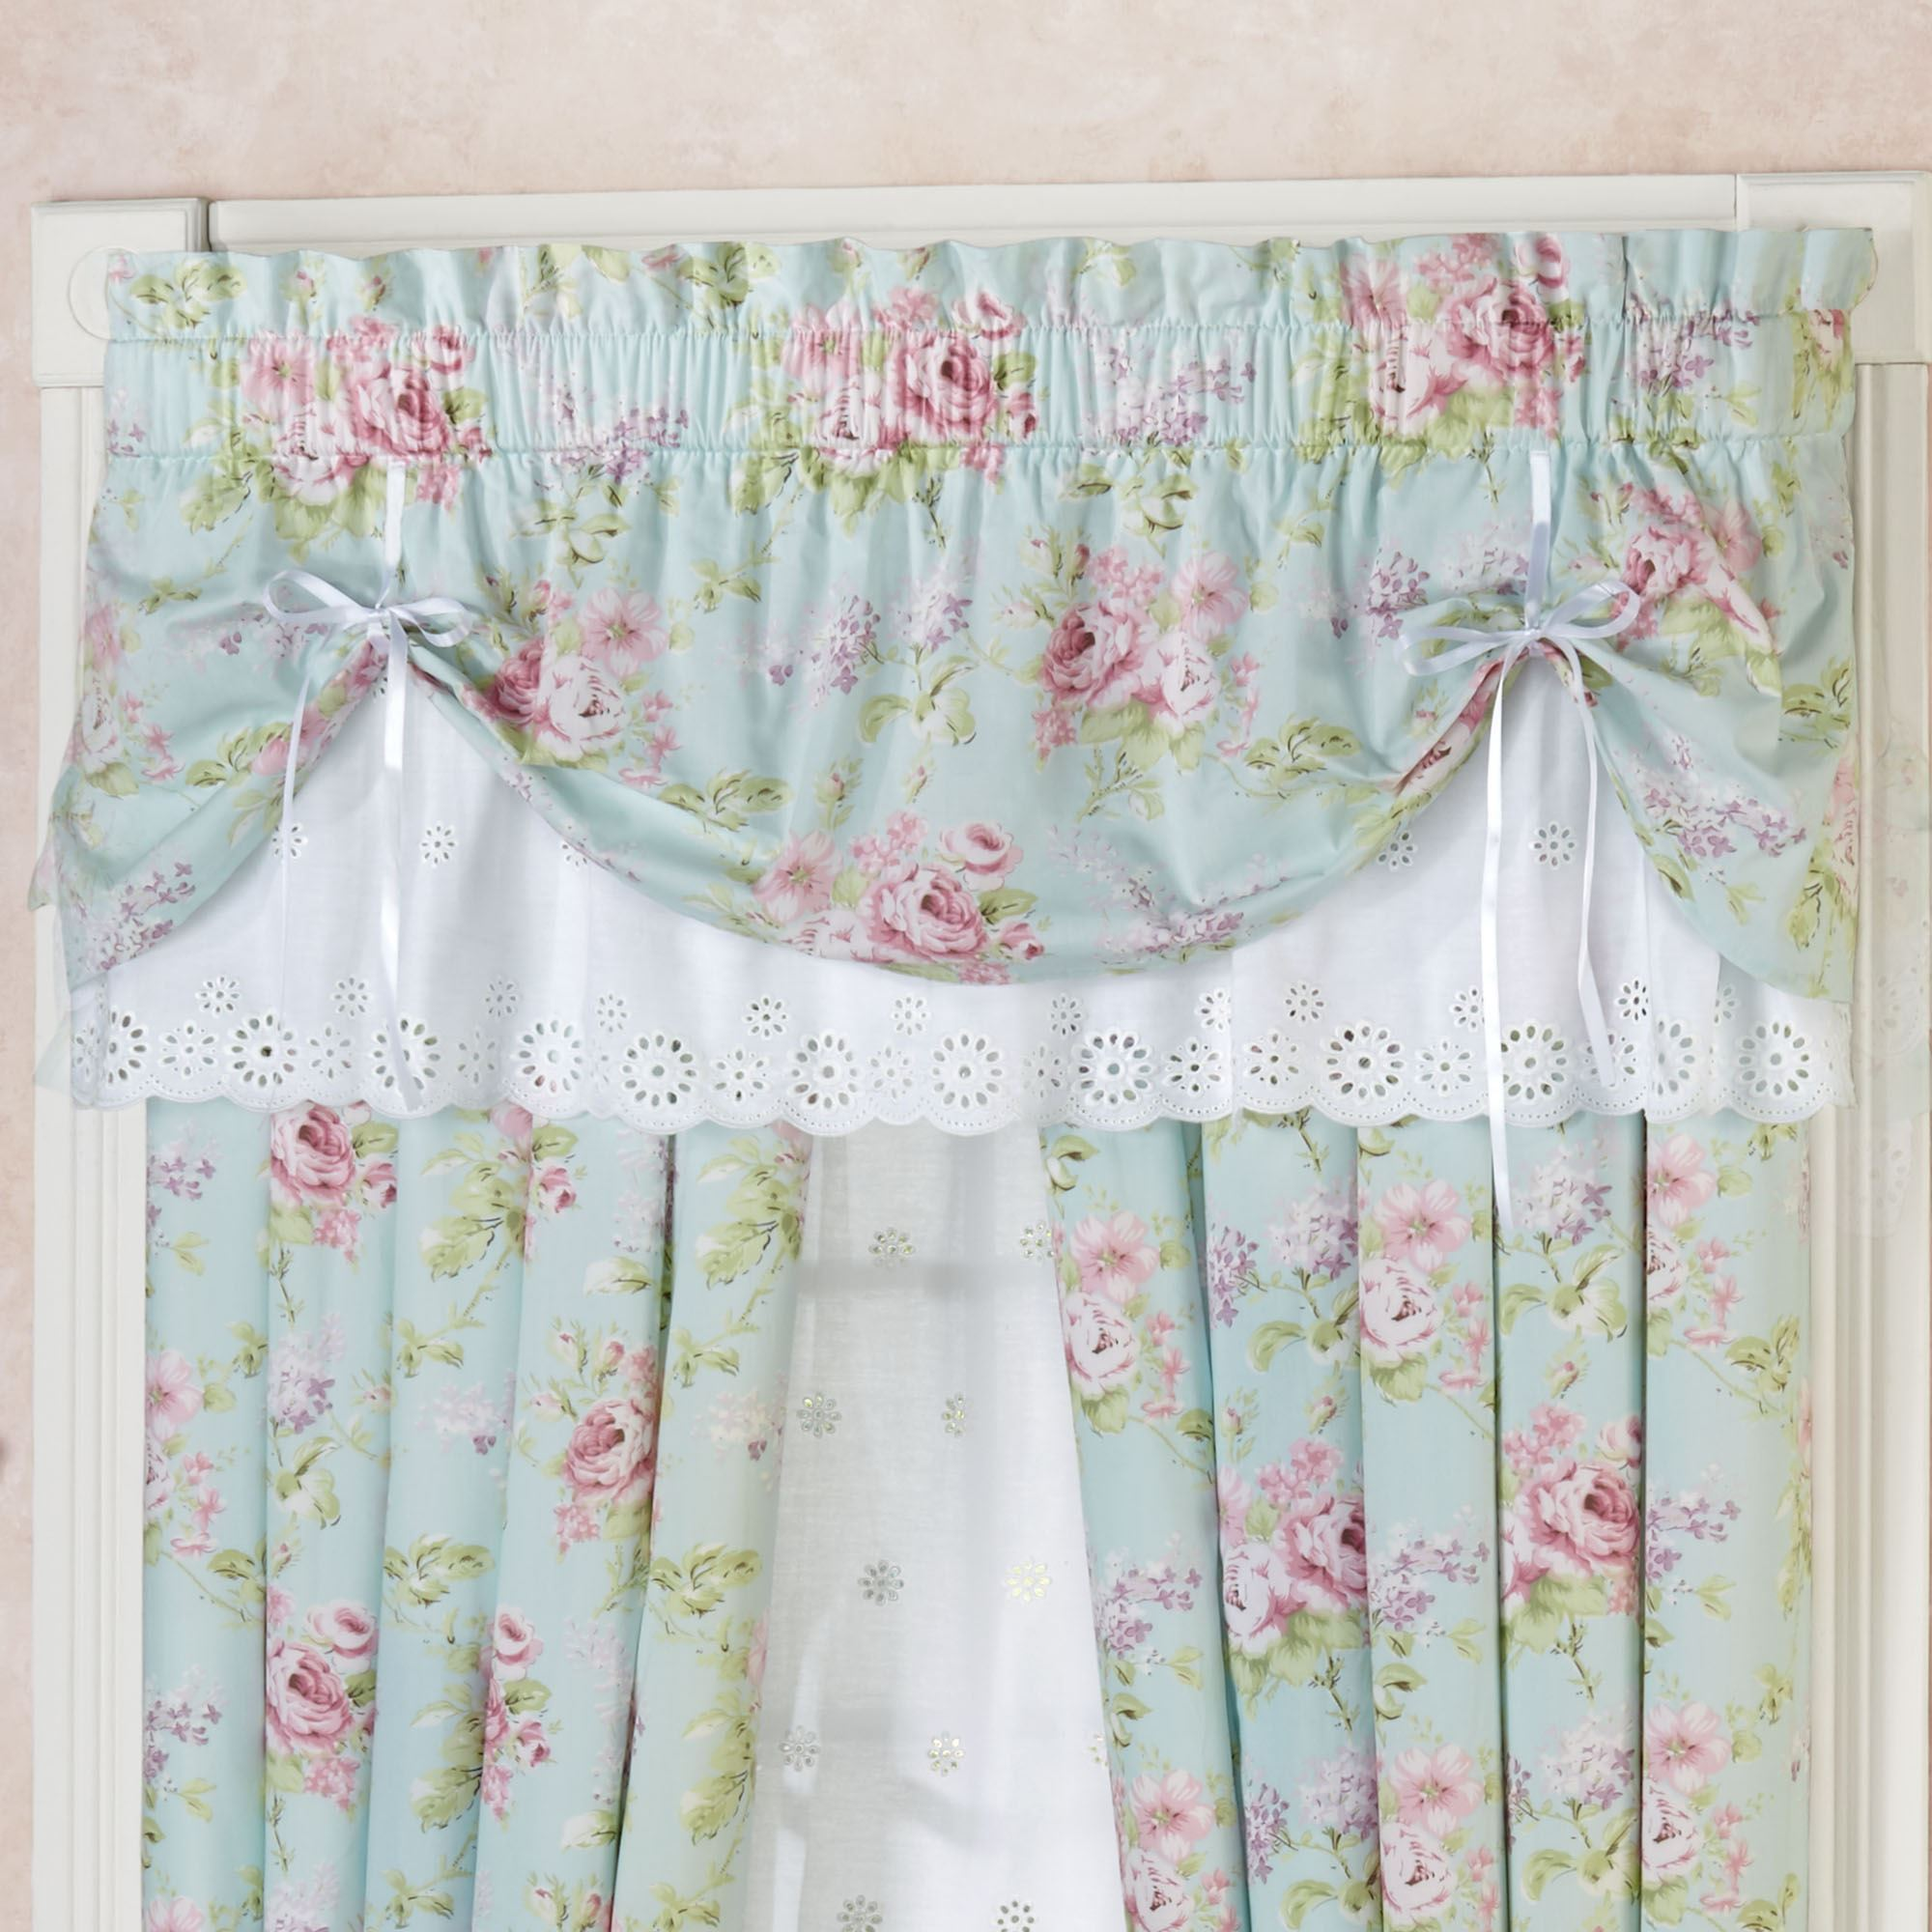 Cottage Rose Tie Up Valance Floral Window Treatment